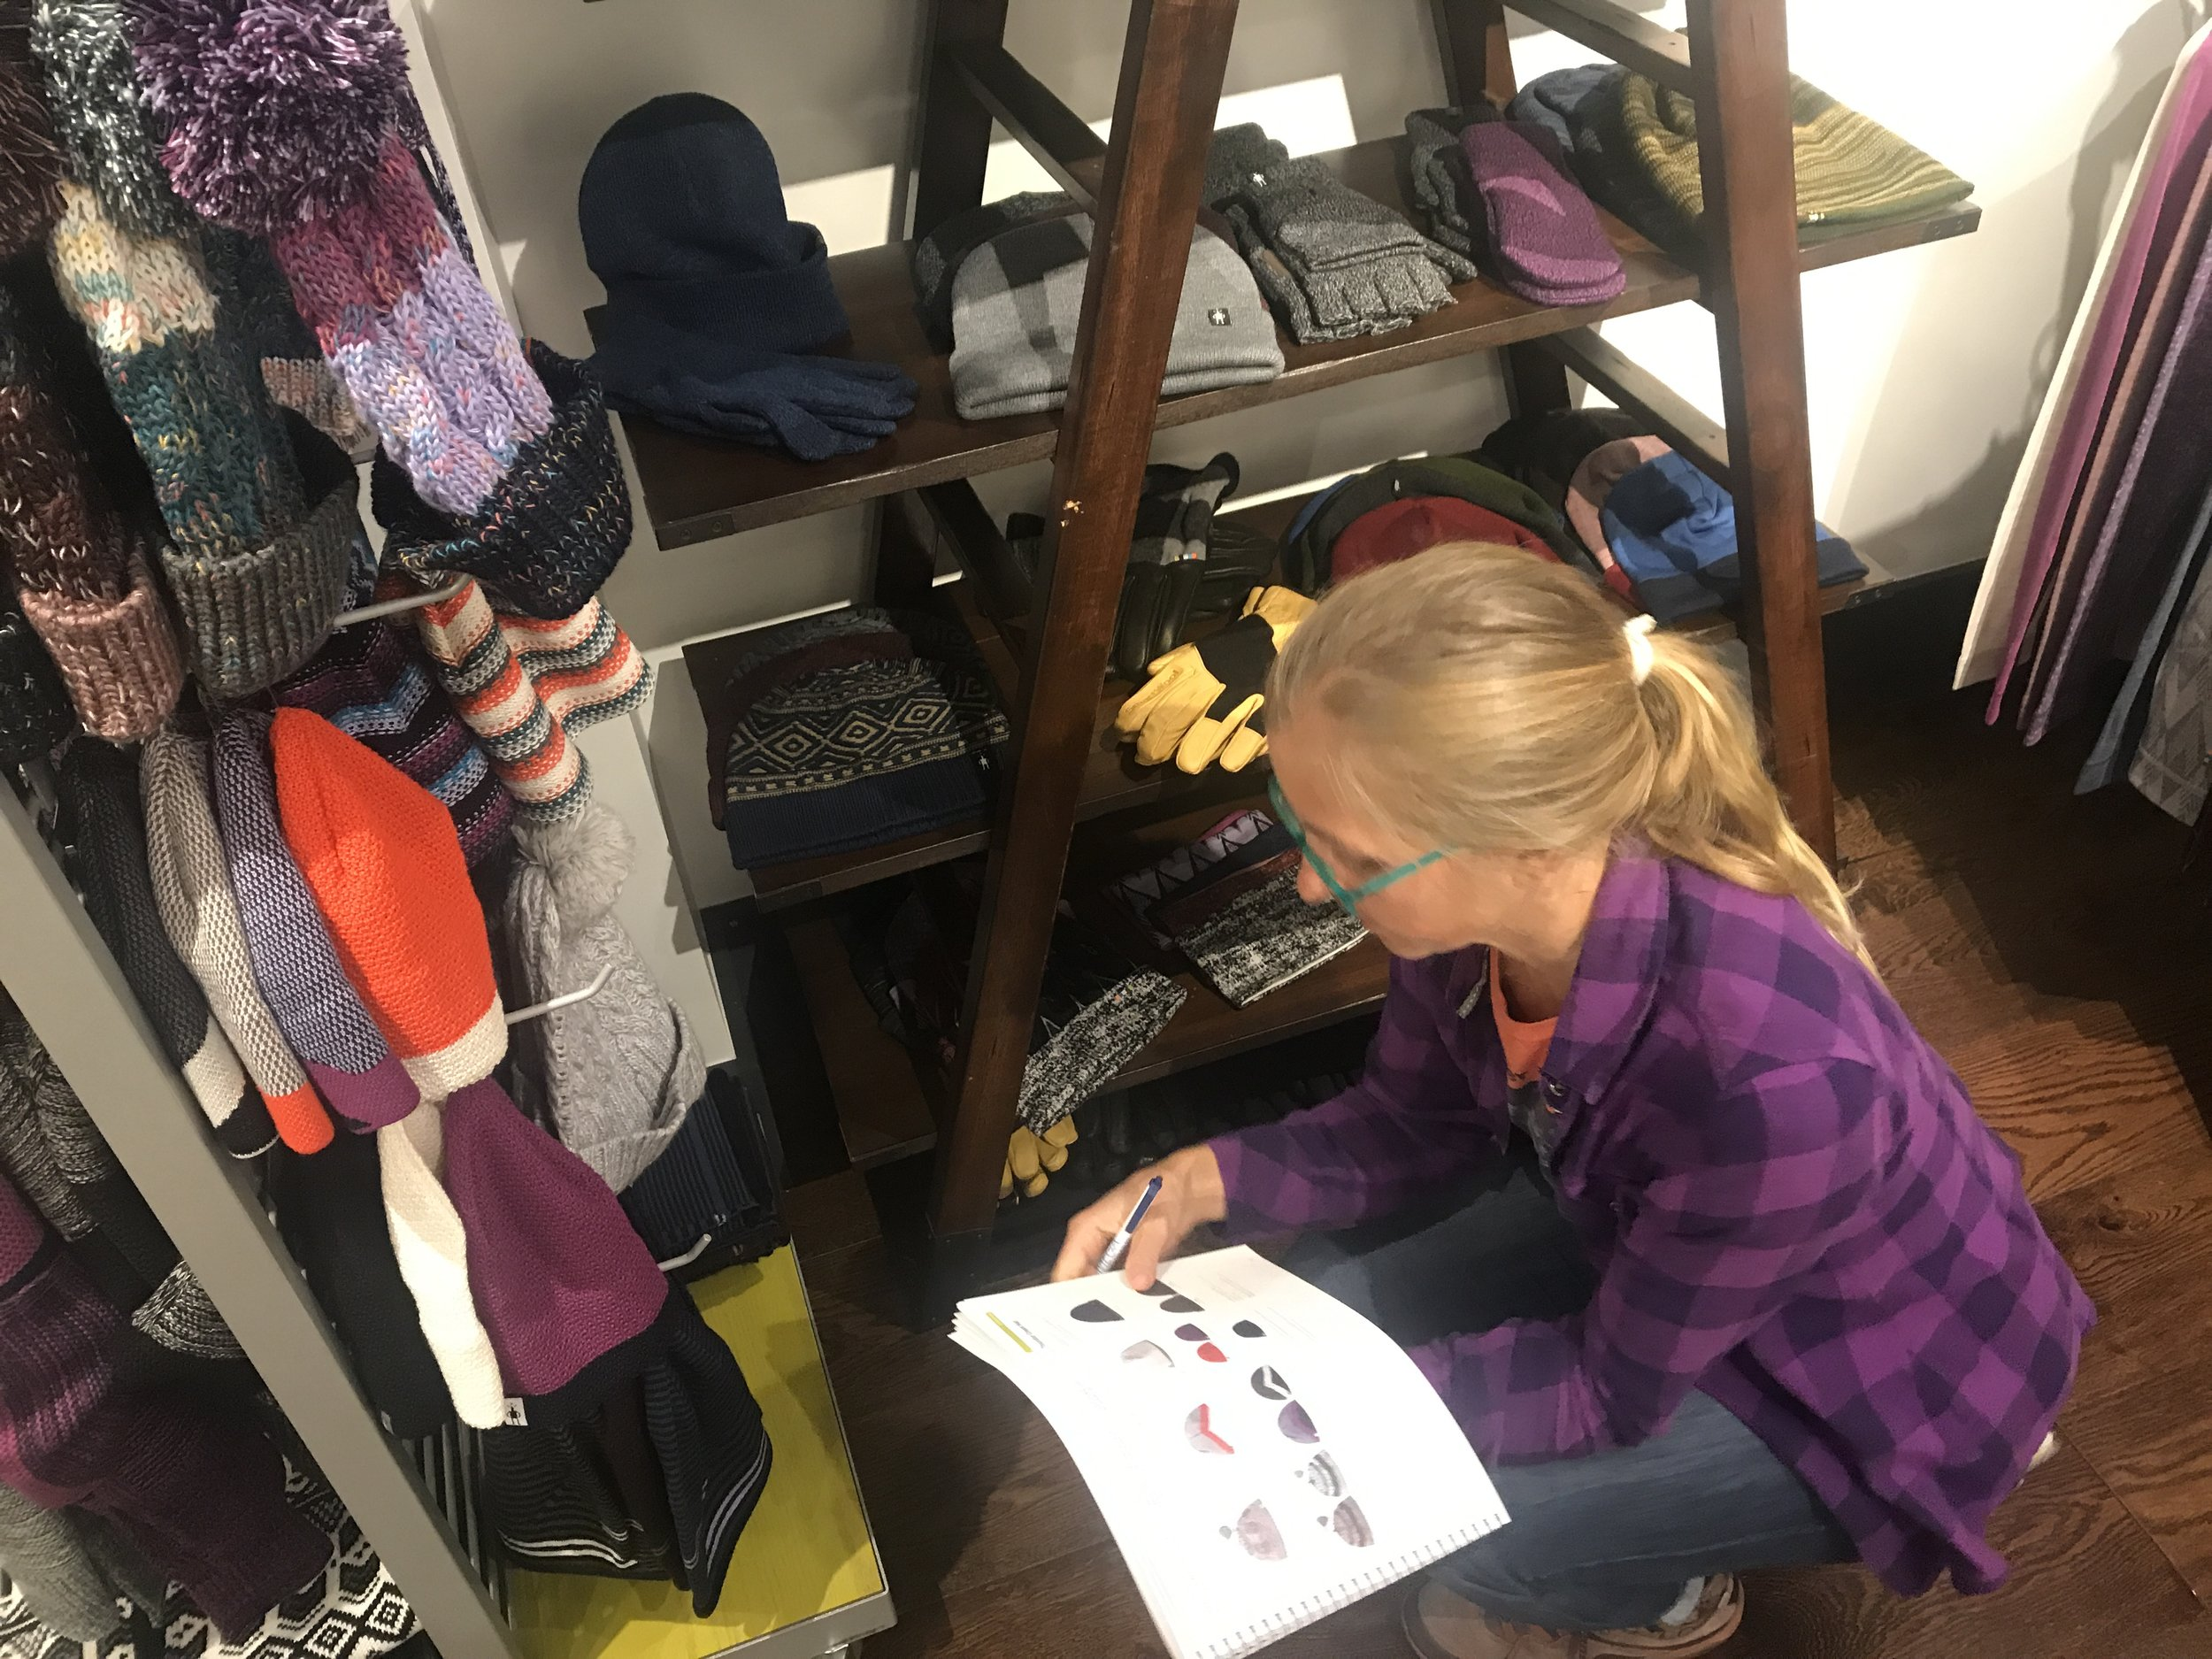 Erin selecting Smartwool accessories for next fall. Come check out our hat and scarf forest at the shop to check out all the cozy accessories to stay warm through the winter.